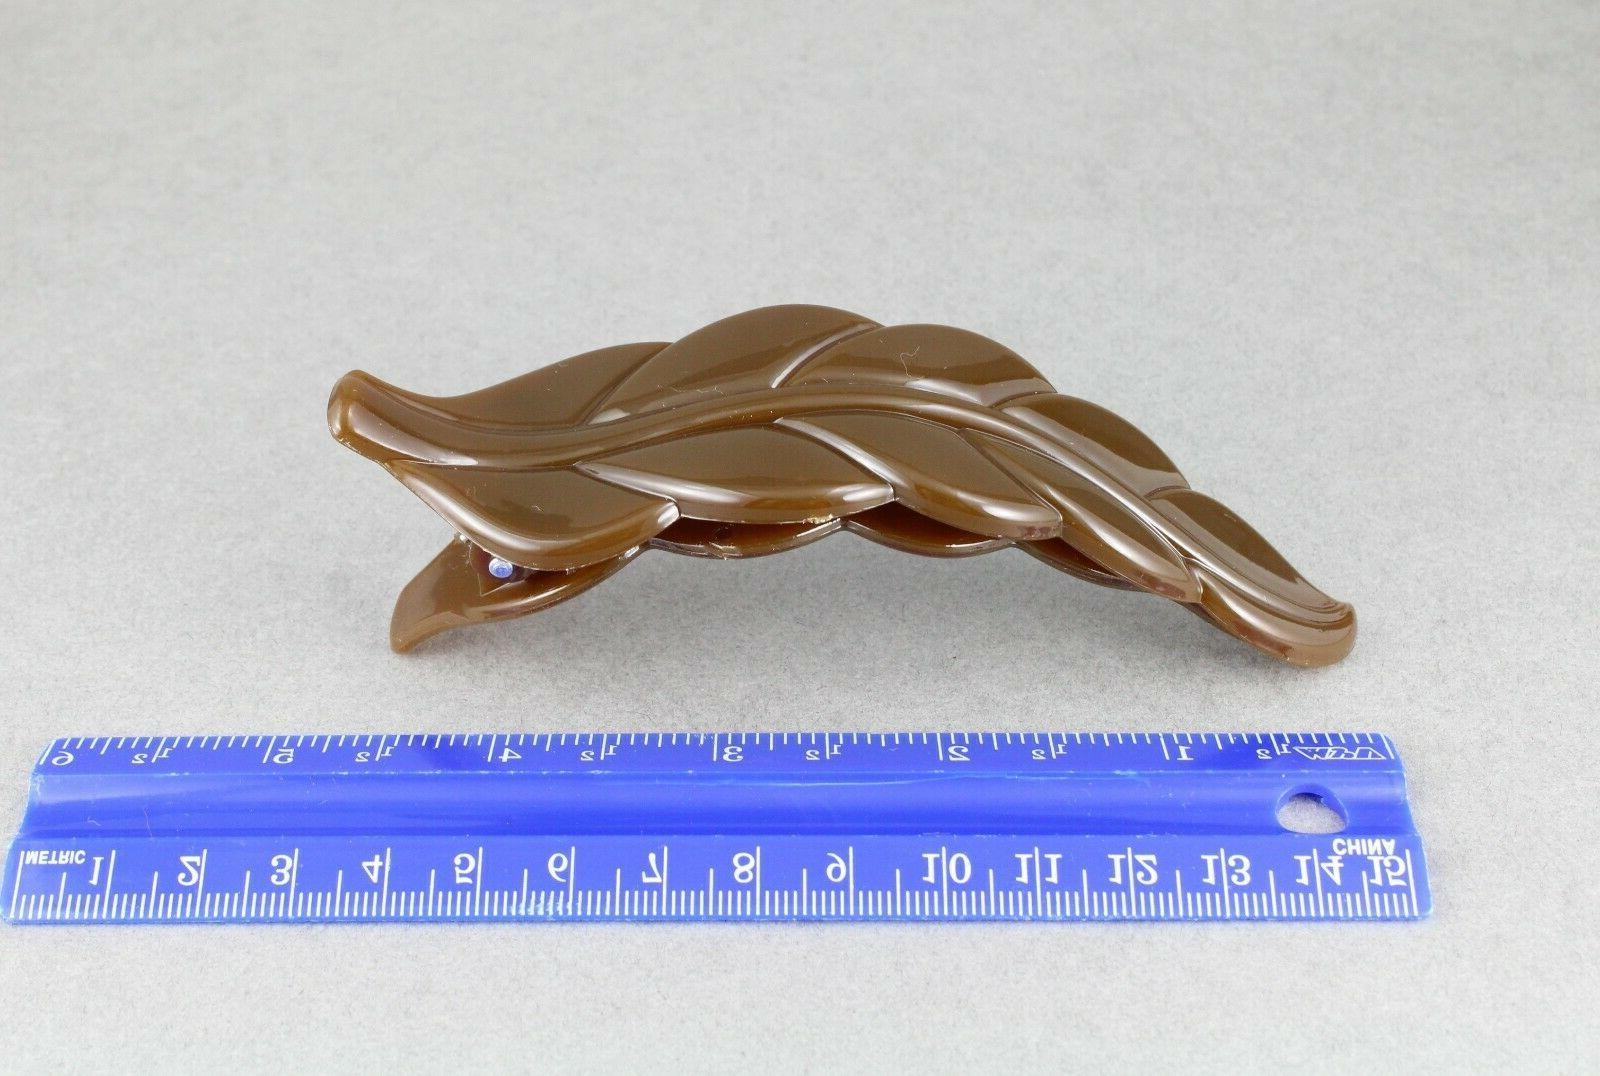 "Brown leaf barrette hair 4.5"" long stamped"